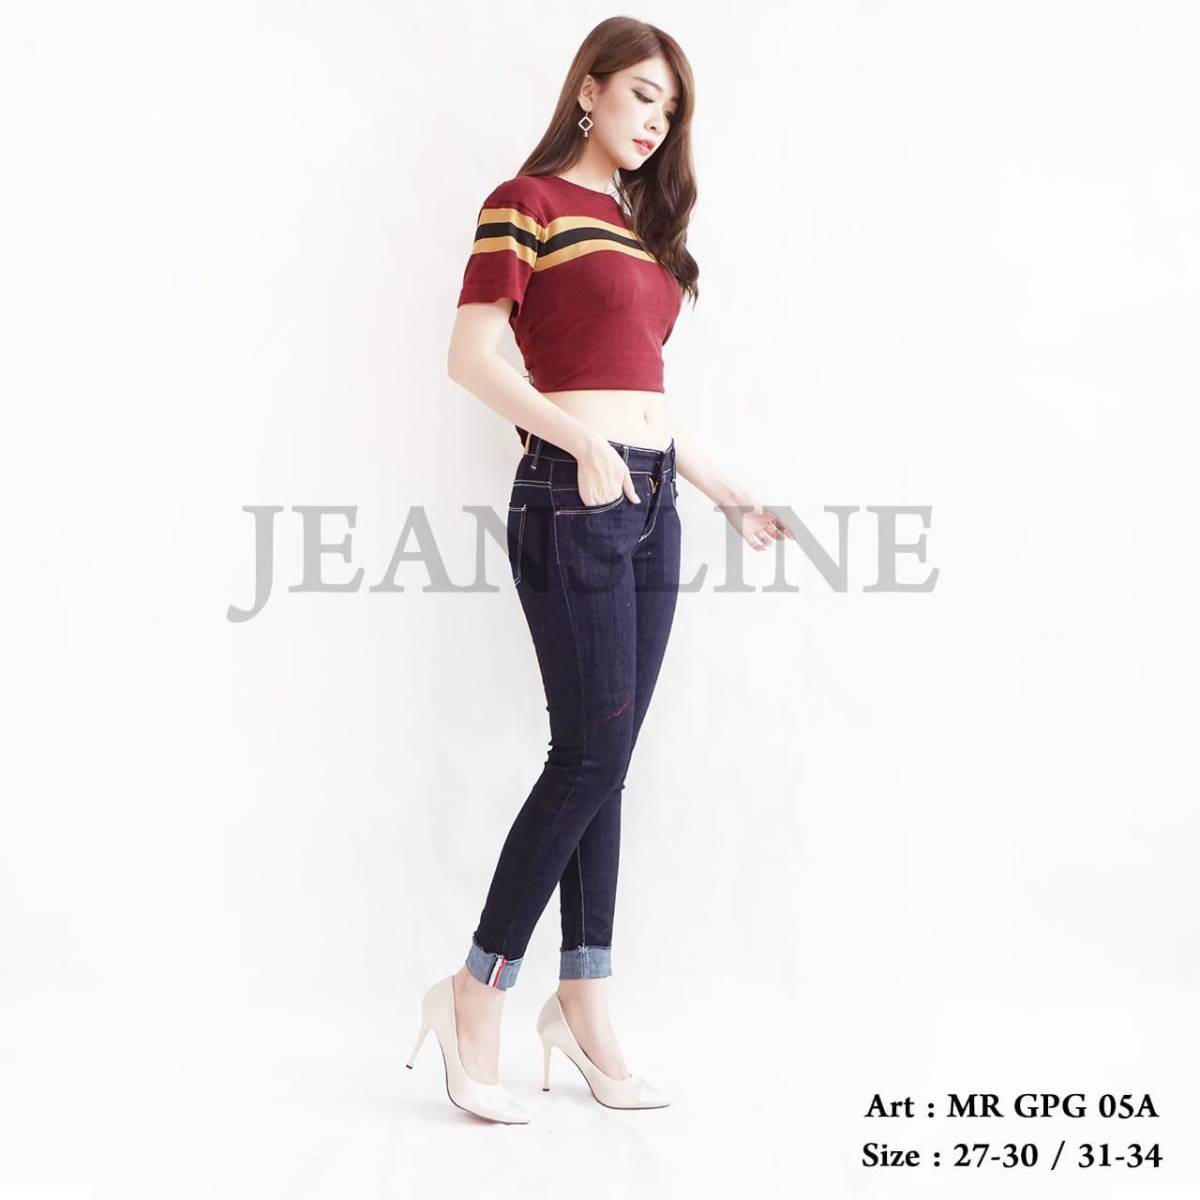 Celana Panjang Jeans Ladies (mr Gpg 05a) - Paket 12 Pcs - Size 31, 32, 33, 341